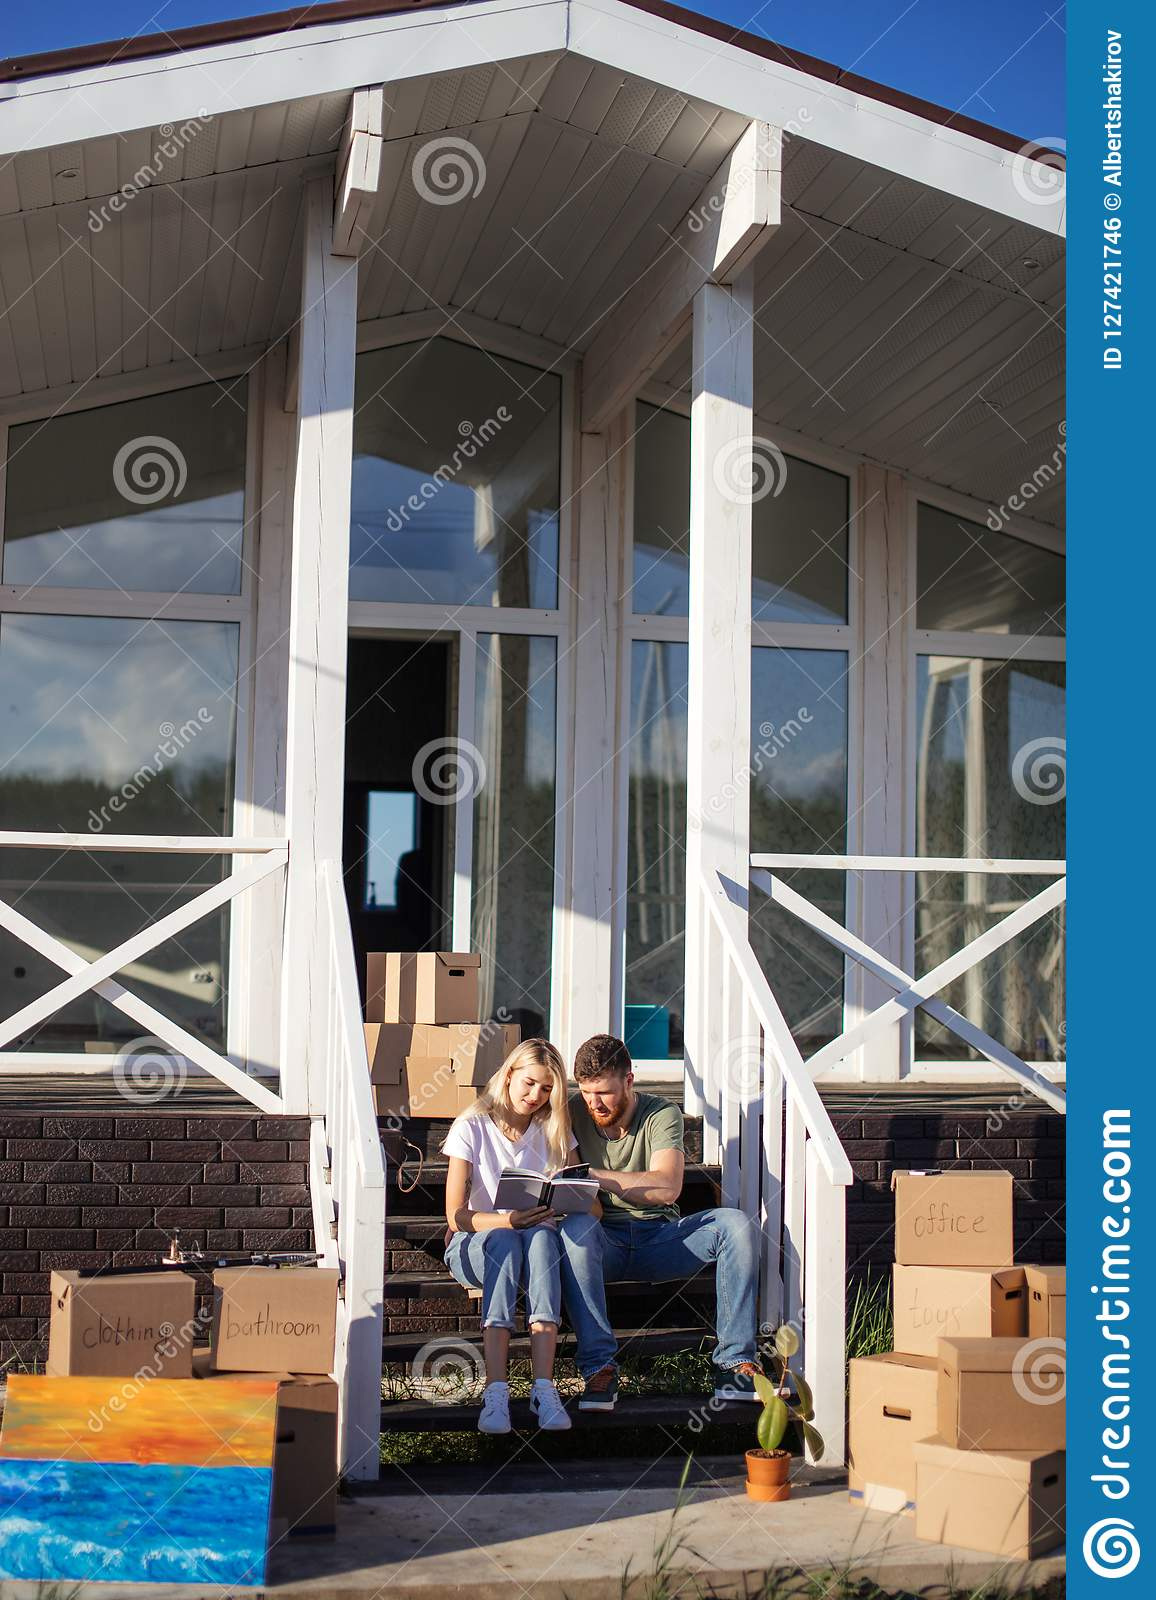 Couple With Book Sitting On Bed While Moving Into New Home Stock